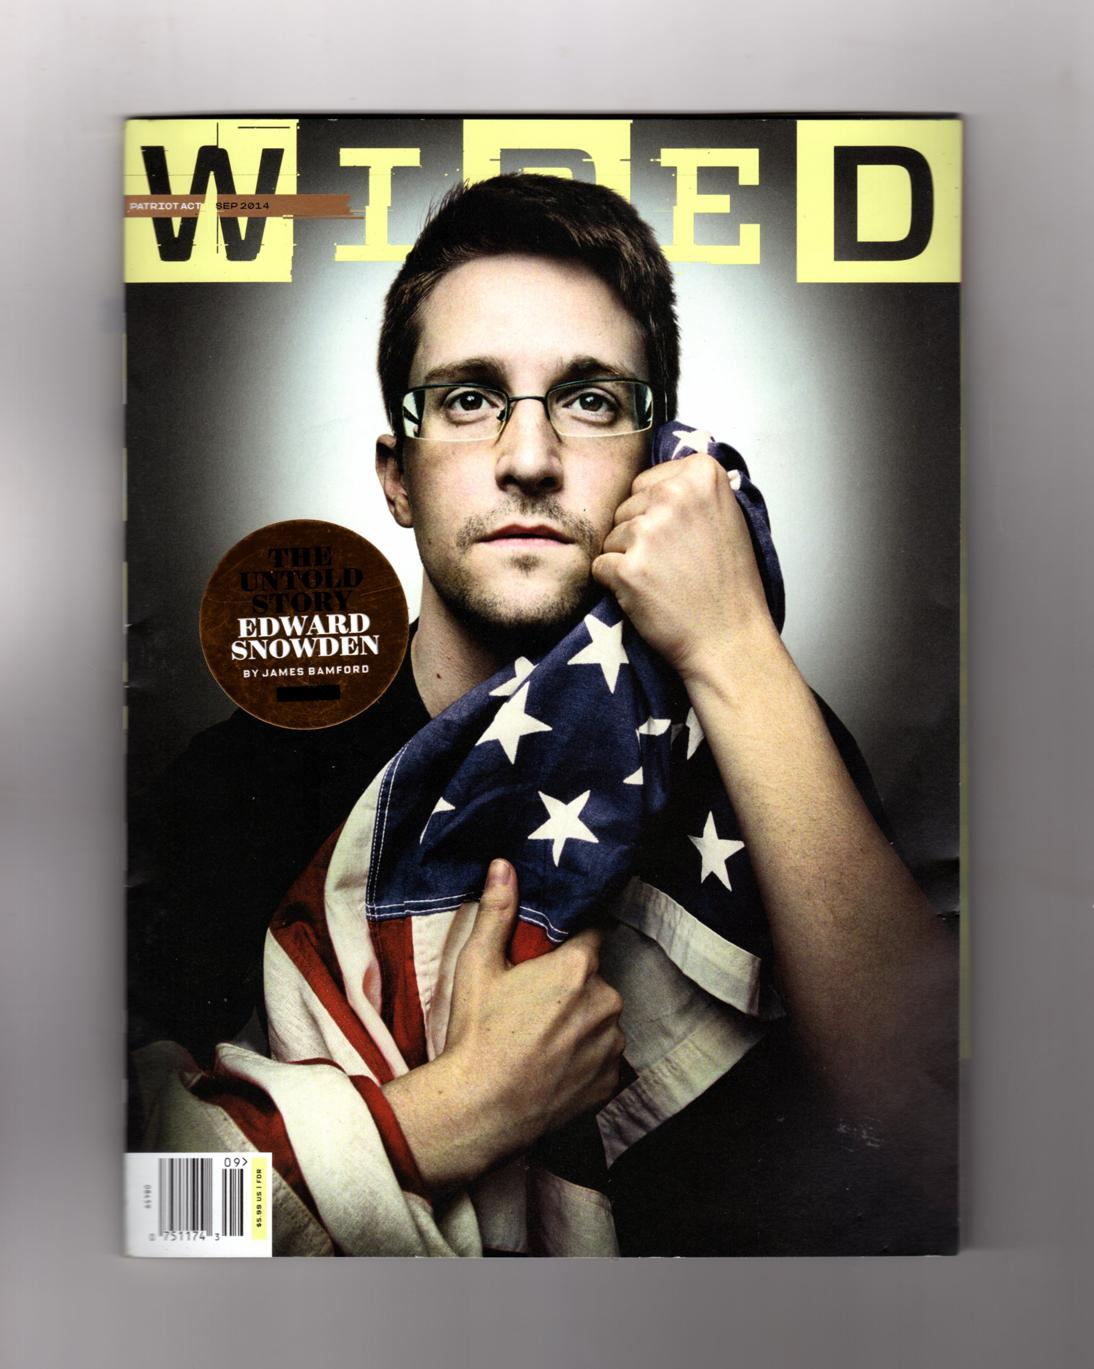 Wired Cover   Wired Magazine September 2014 Edward Snowden The Untold Story